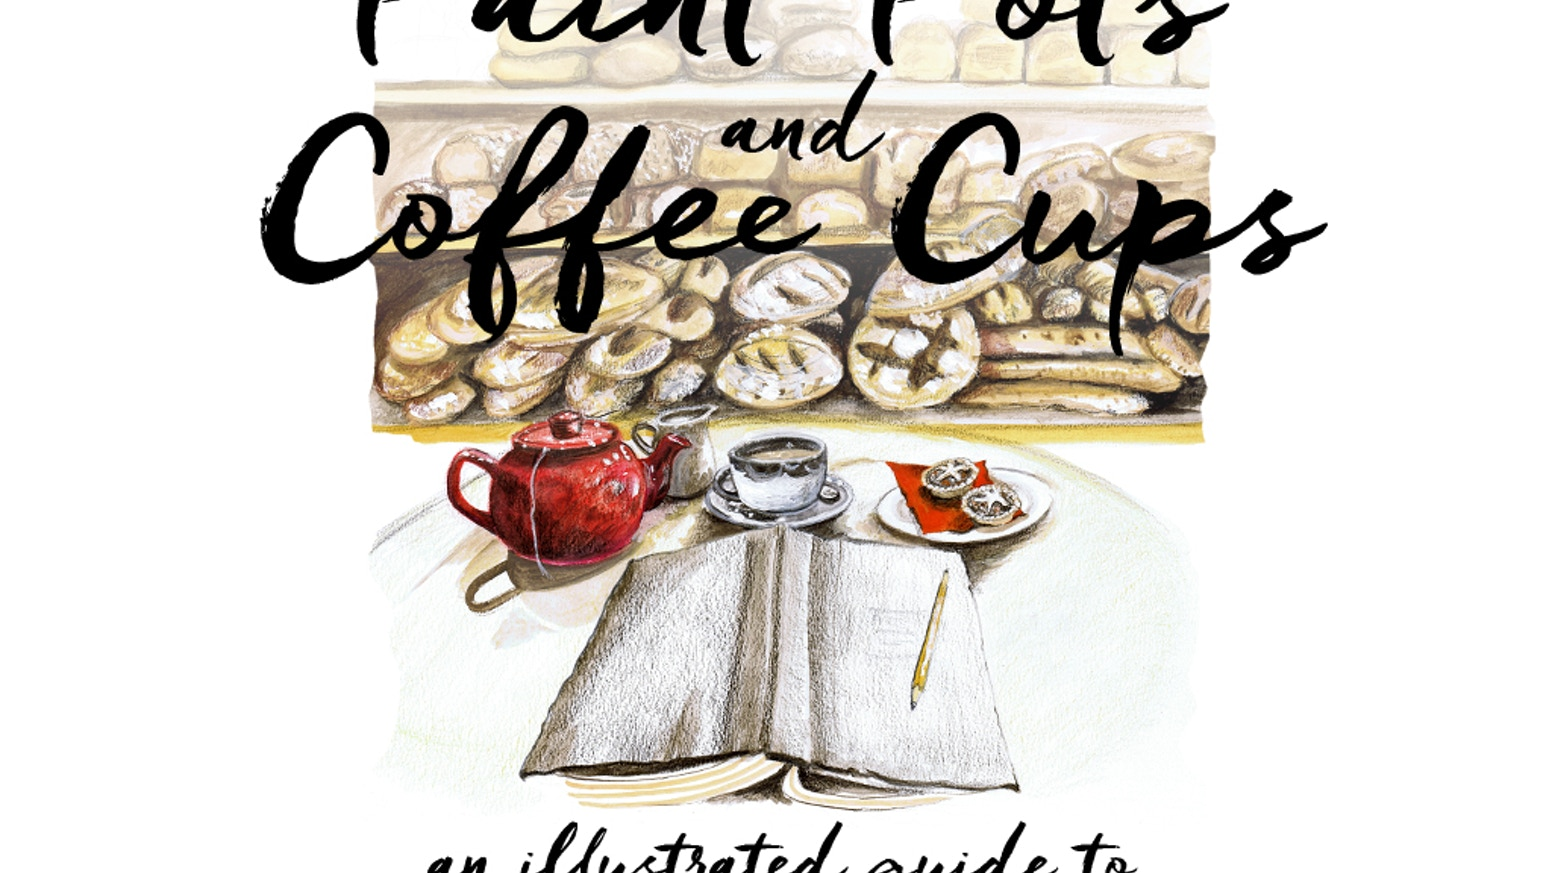 Let Oxford's artists give you a tour of Oxford's cafes with their illustrations, and discover more cafes to suit your every occasion.